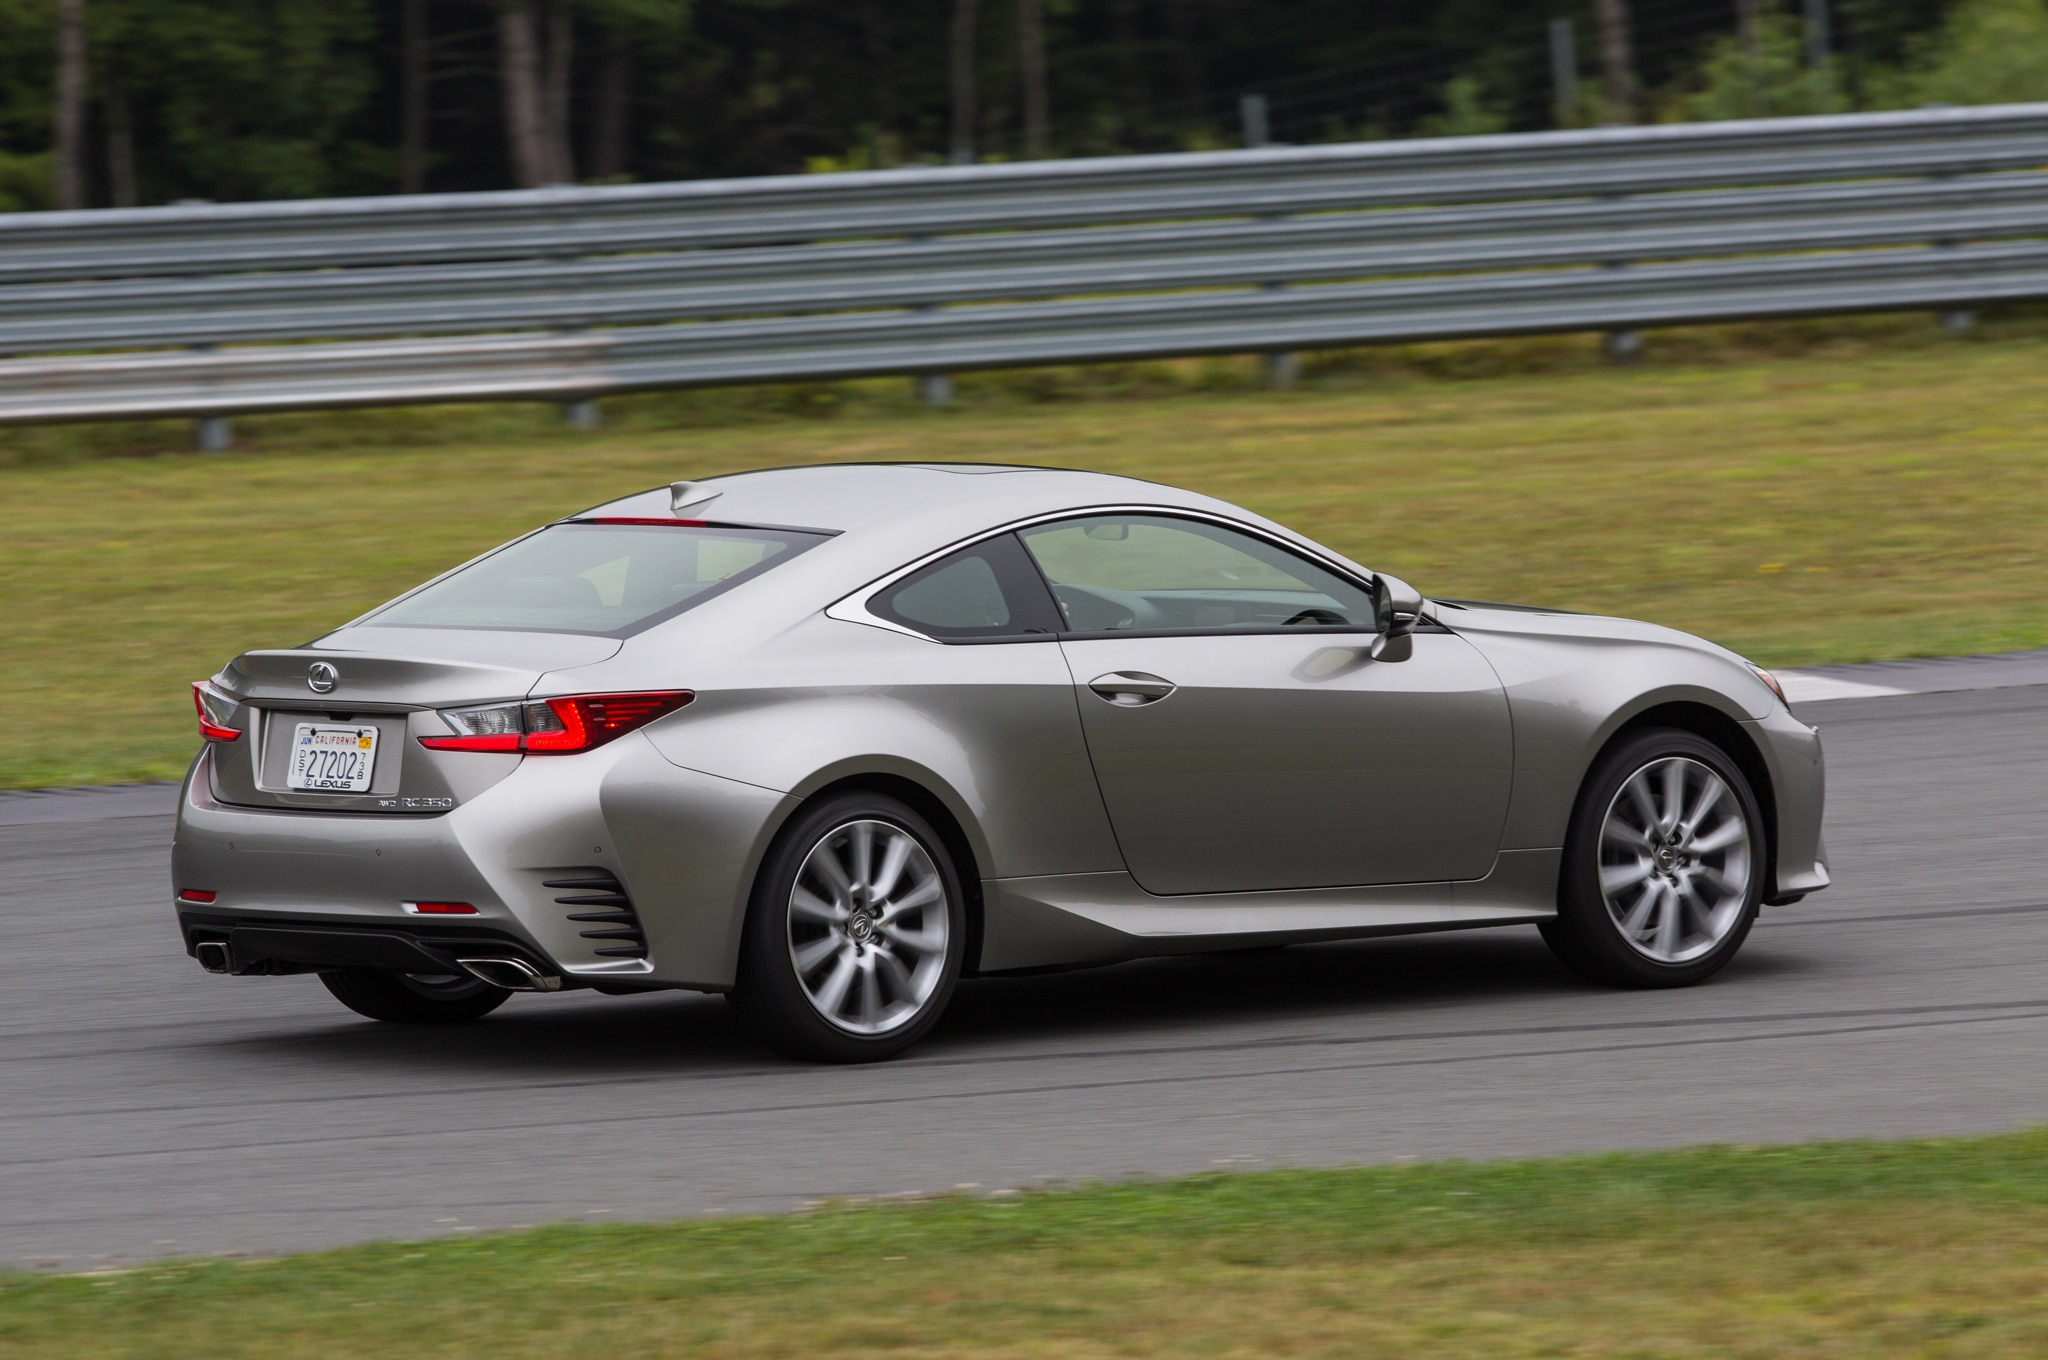 2016 Lexus RC 200t Confirmed for US with TurboFour Engine